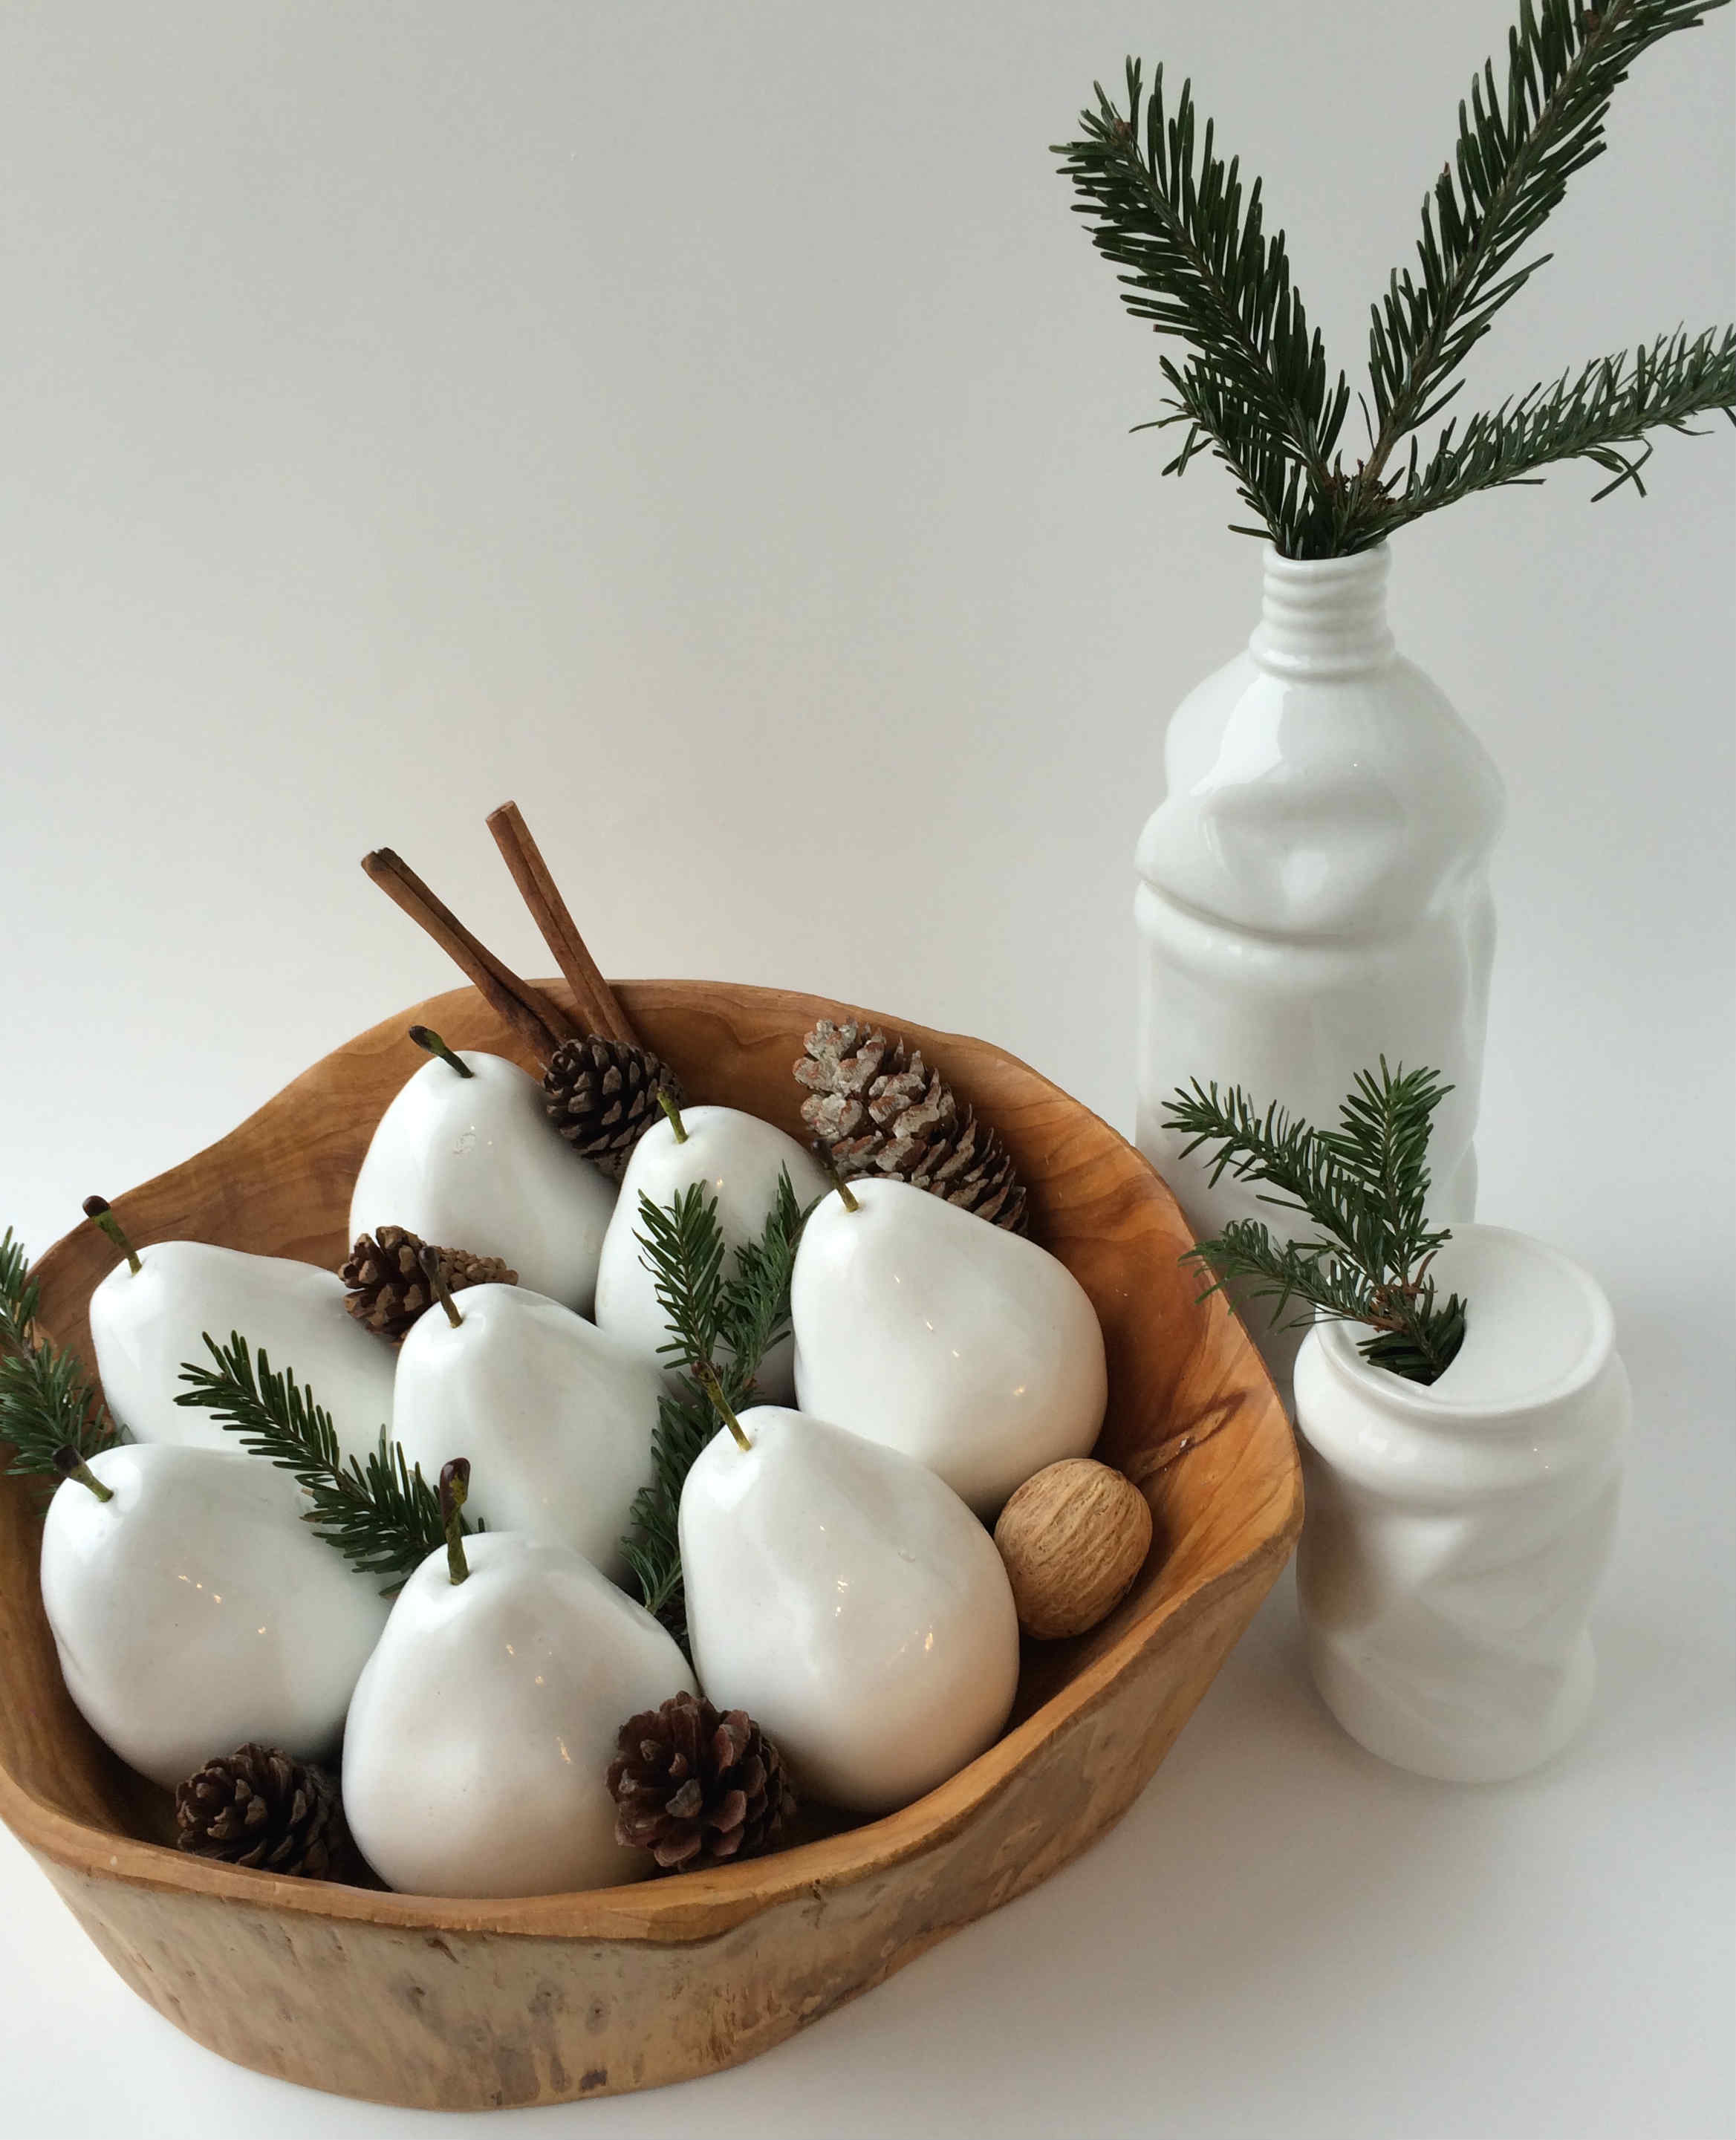 How To Dress Your All Season Modern Decorations For The Holidays ...